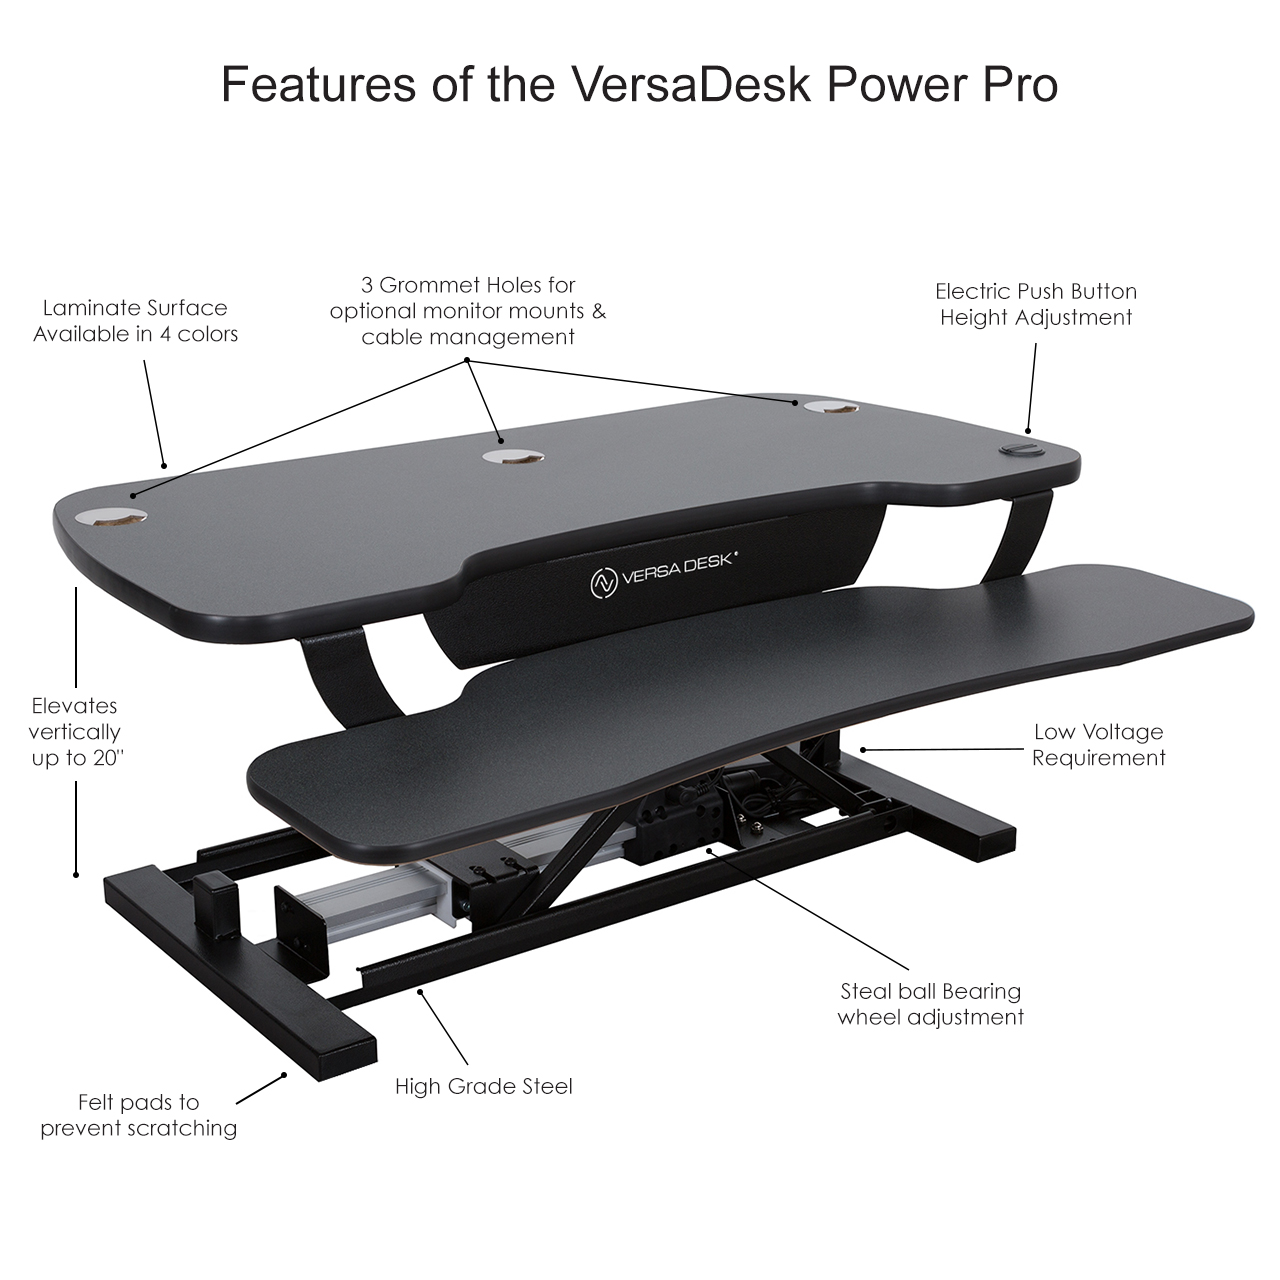 Features of the Power Pro Standing Desk Converter